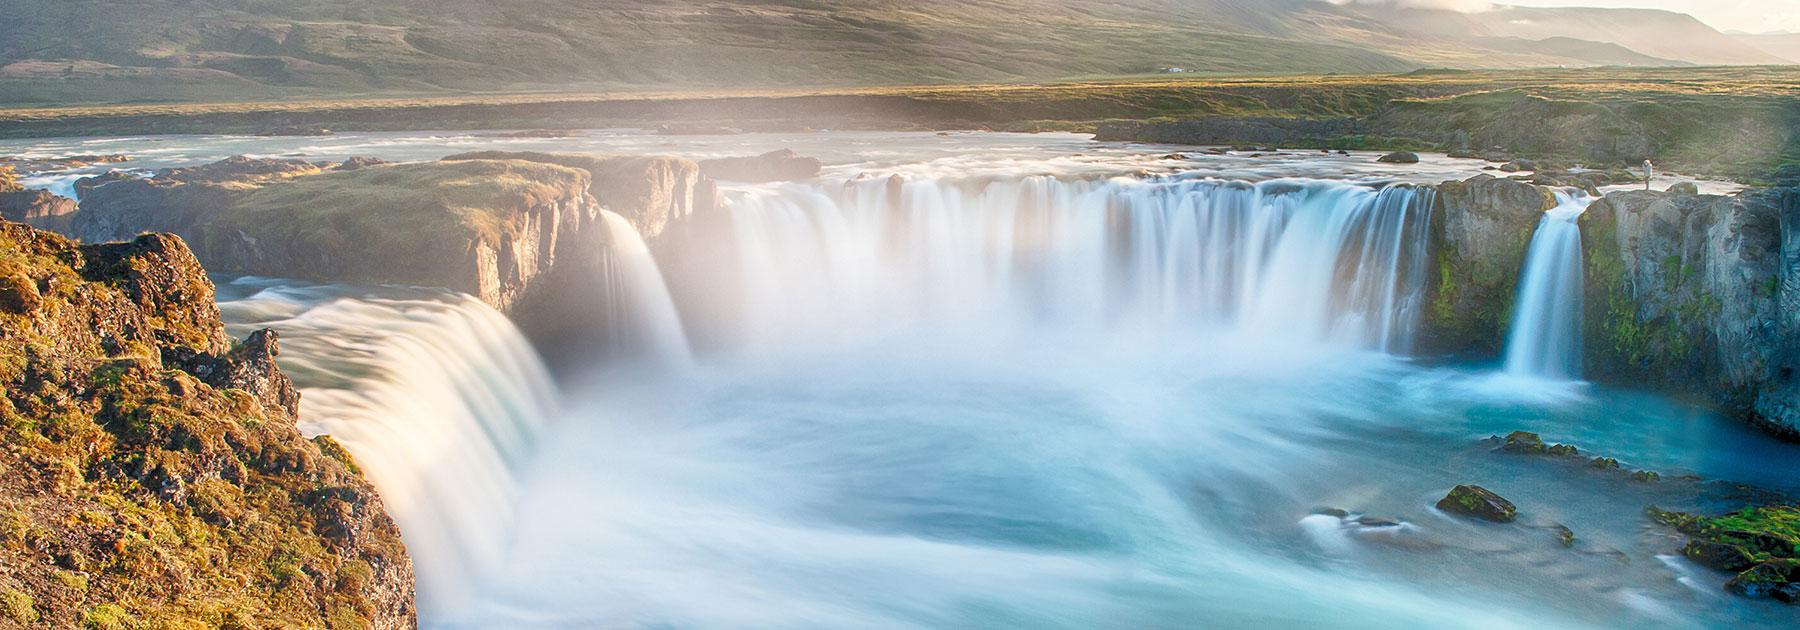 Educational Travel: Iceland for School Groups! Group Tour